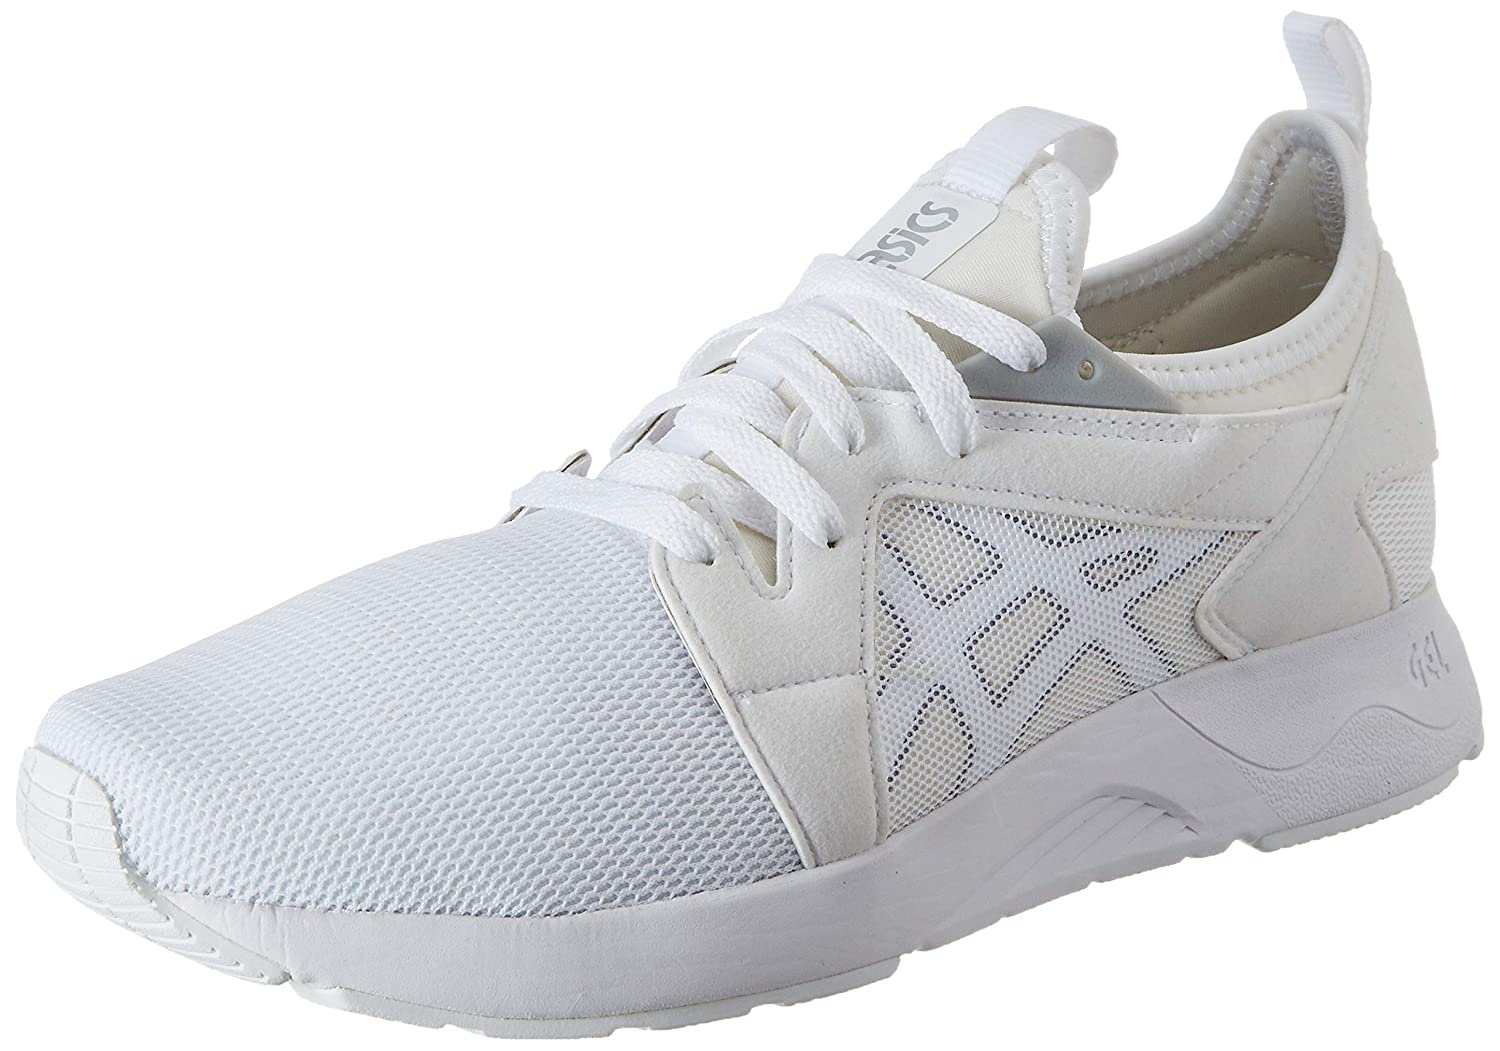 Asics Tiger Gel Lyte V Pro Shoes: Amazon.co.uk: Shoes & Bags